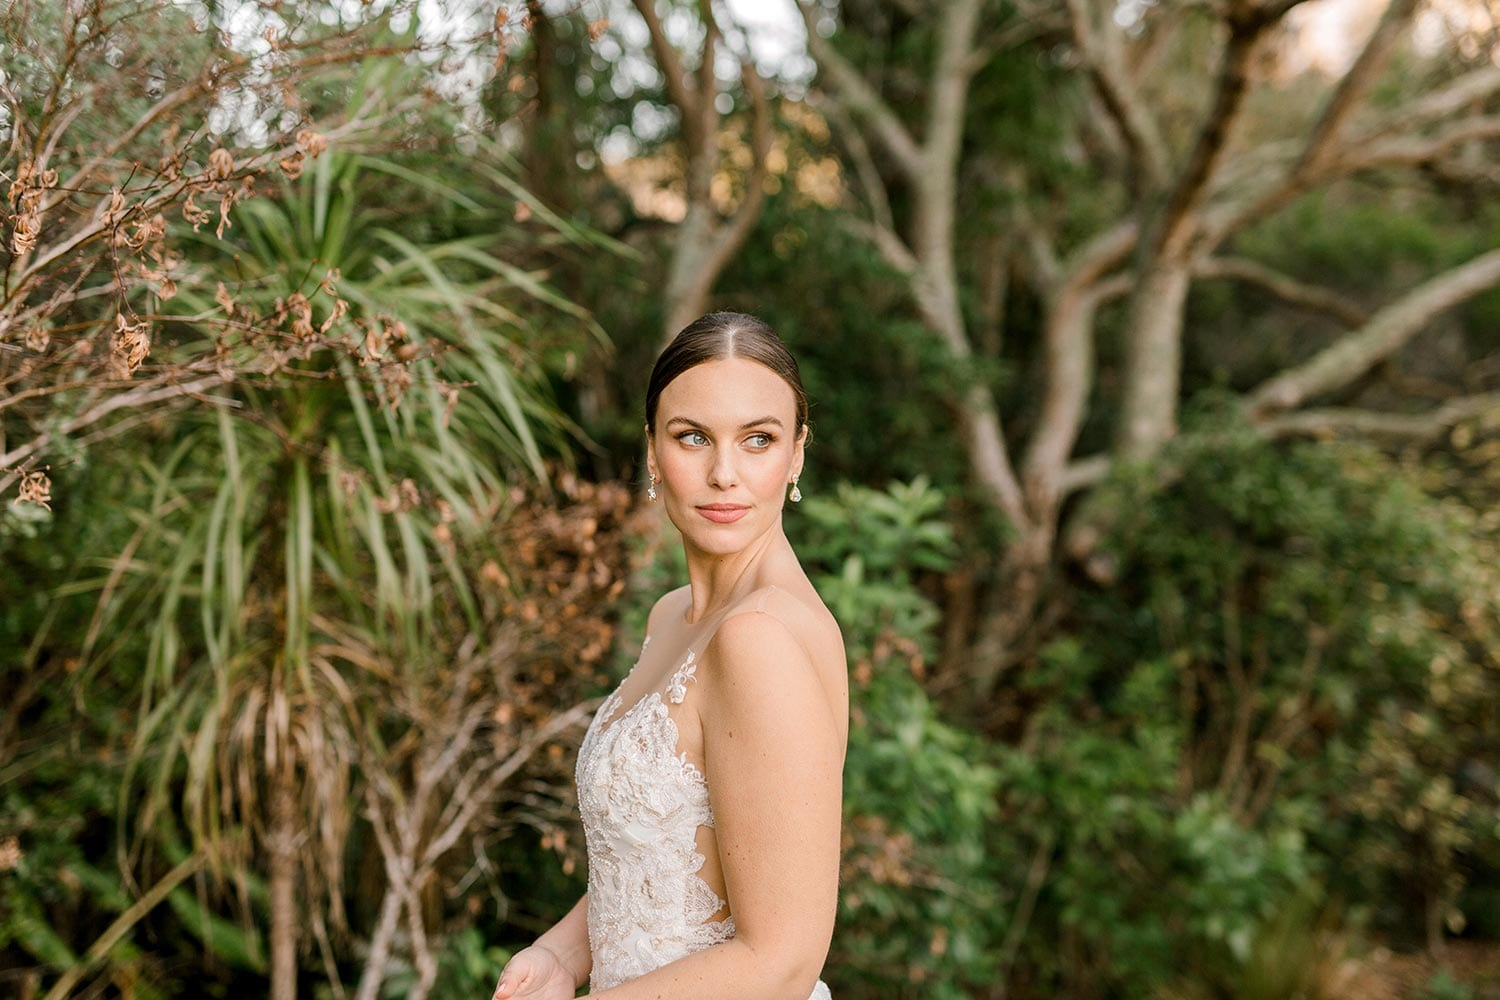 Samantha Wedding Dress from Vinka Design. This beautiful wedding dress has a nude sheer illusion strapless neckline made from fine Italian tulle. Low sheer back & structured bodice, & soft crepe train. Close up detail of bodice from the side. Photographed in Landscaped garden.